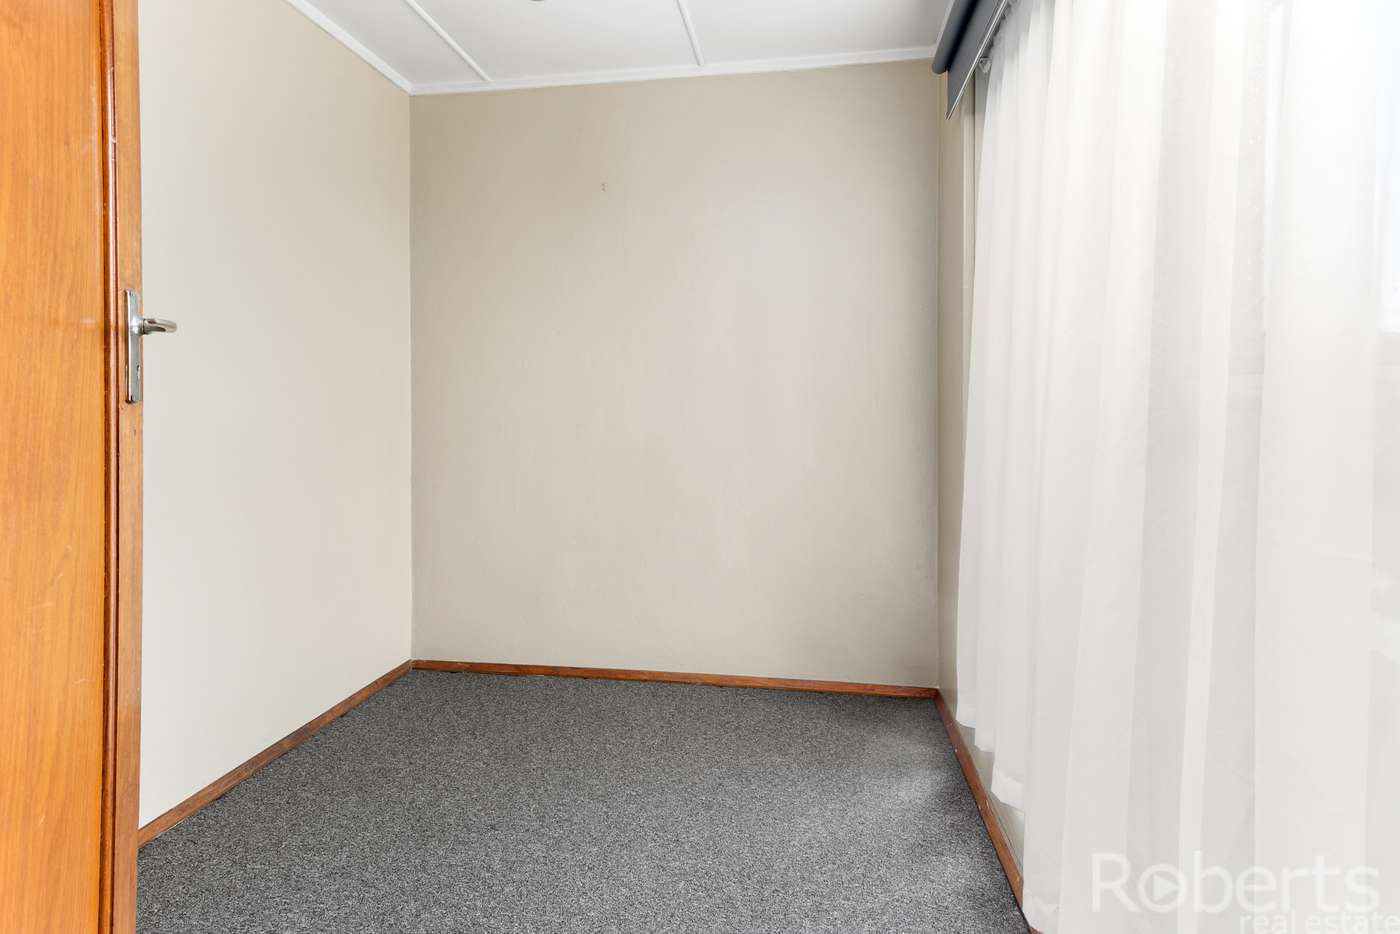 Sixth view of Homely unit listing, 6/21-23 Amy Road, Newstead TAS 7250